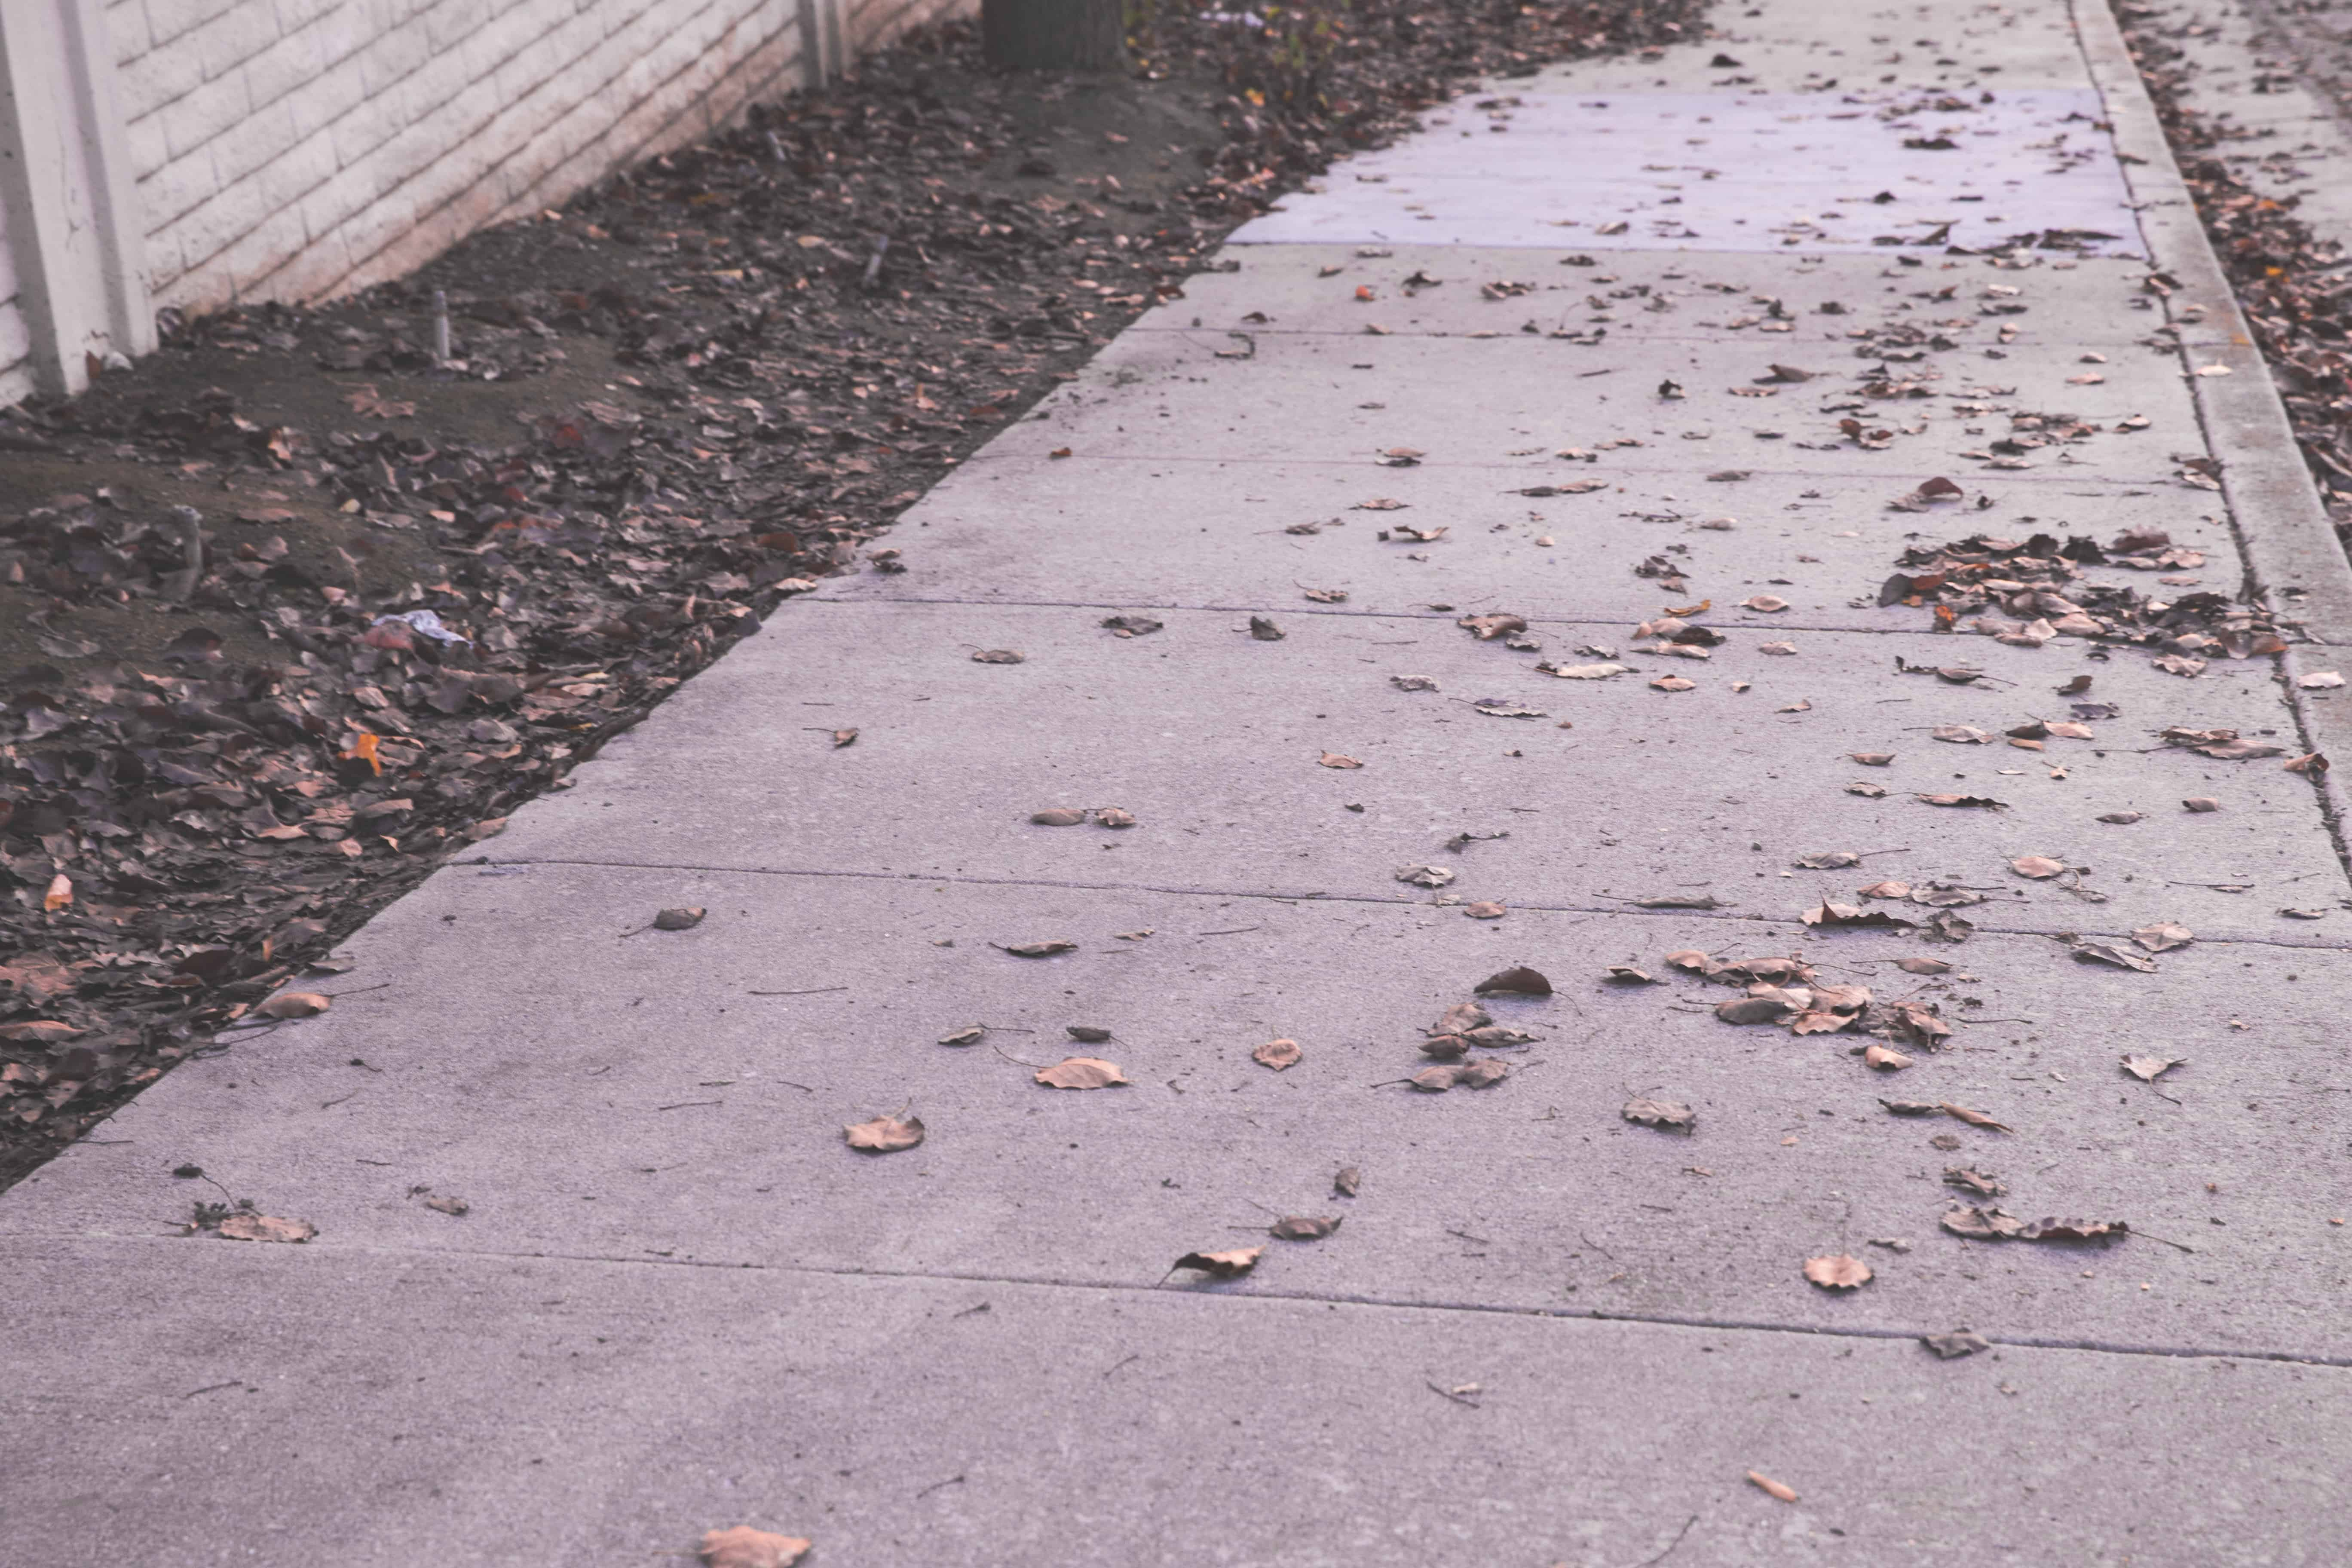 Leaves on the sidewalk in San Jose, California in the South Bay Area - the lack of seasons is one of the reasons I'm ready to move out of the Bay Area!